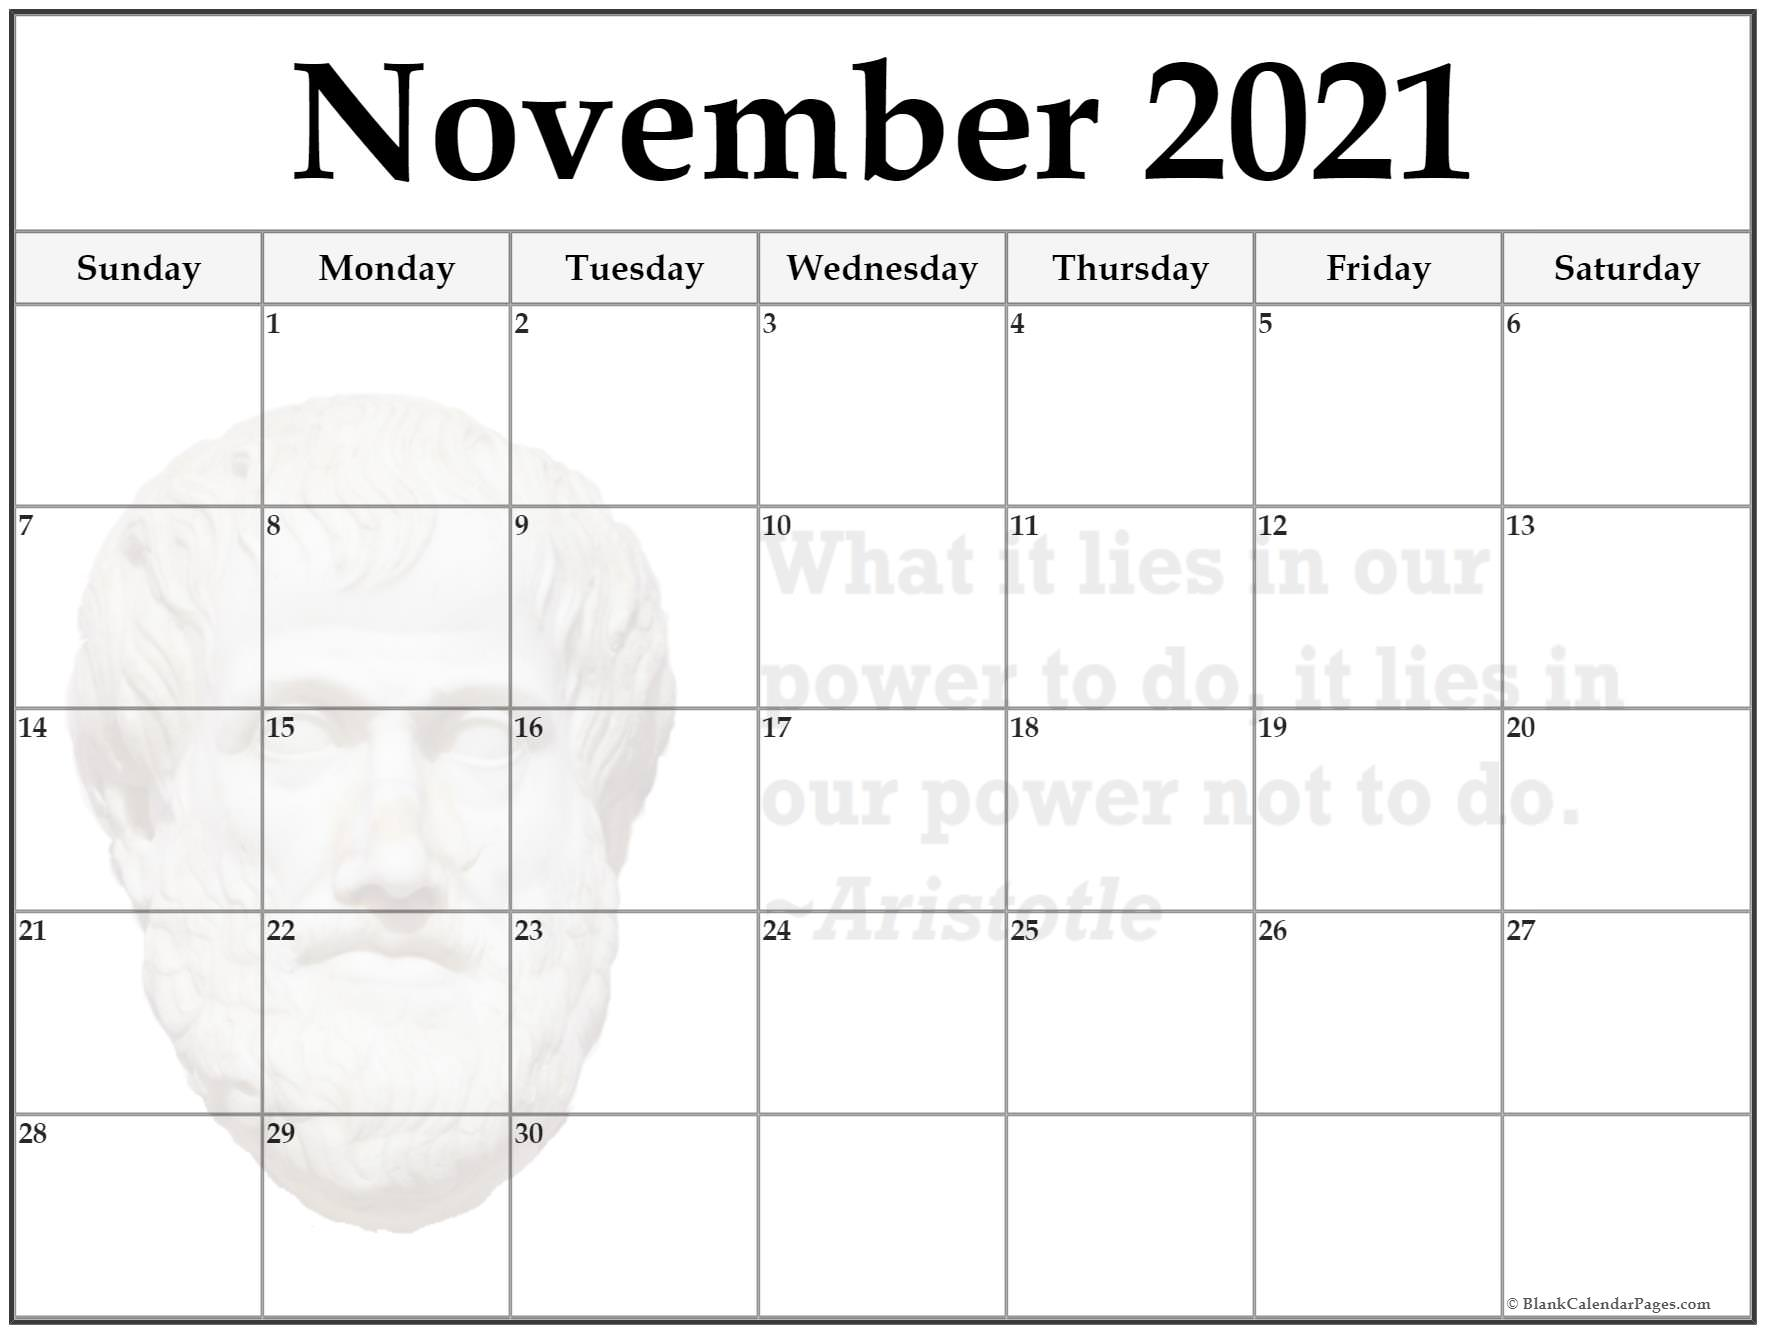 November calendar 2018What is lies in our power to do, it lies in our power not to do ~Aristotle